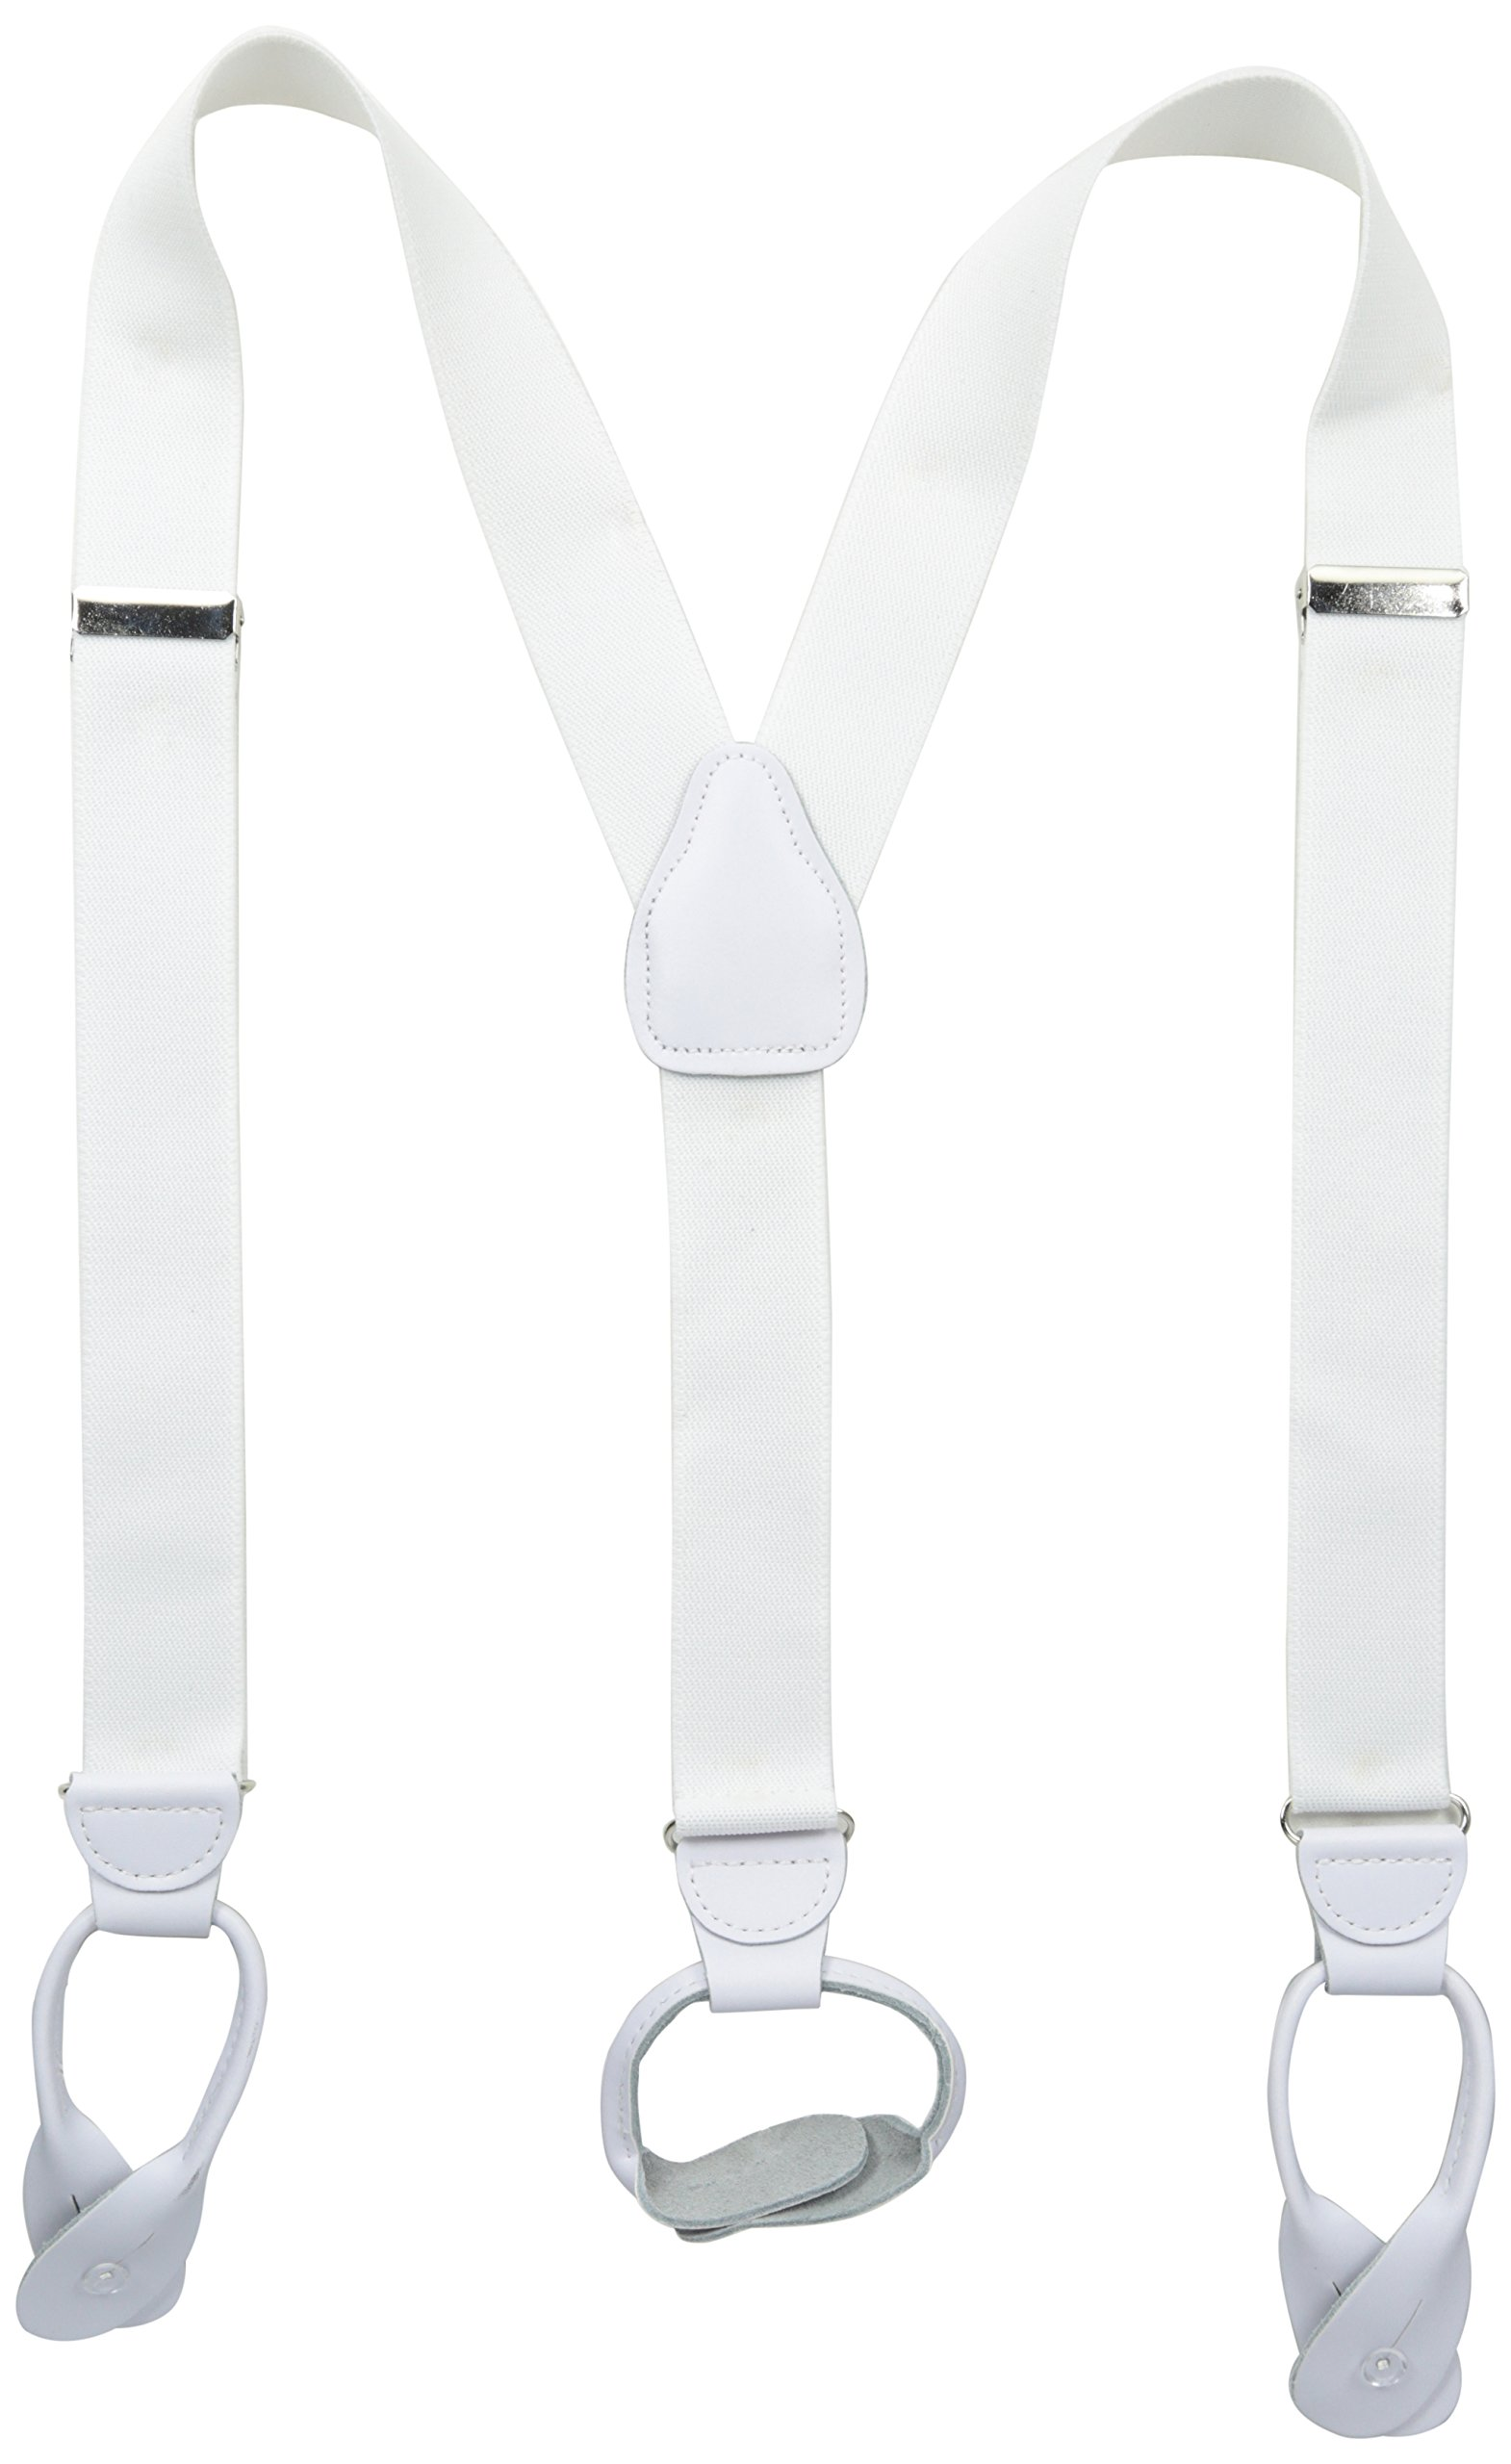 Stacy Adams Men's Button On Suspenders, White, One Size